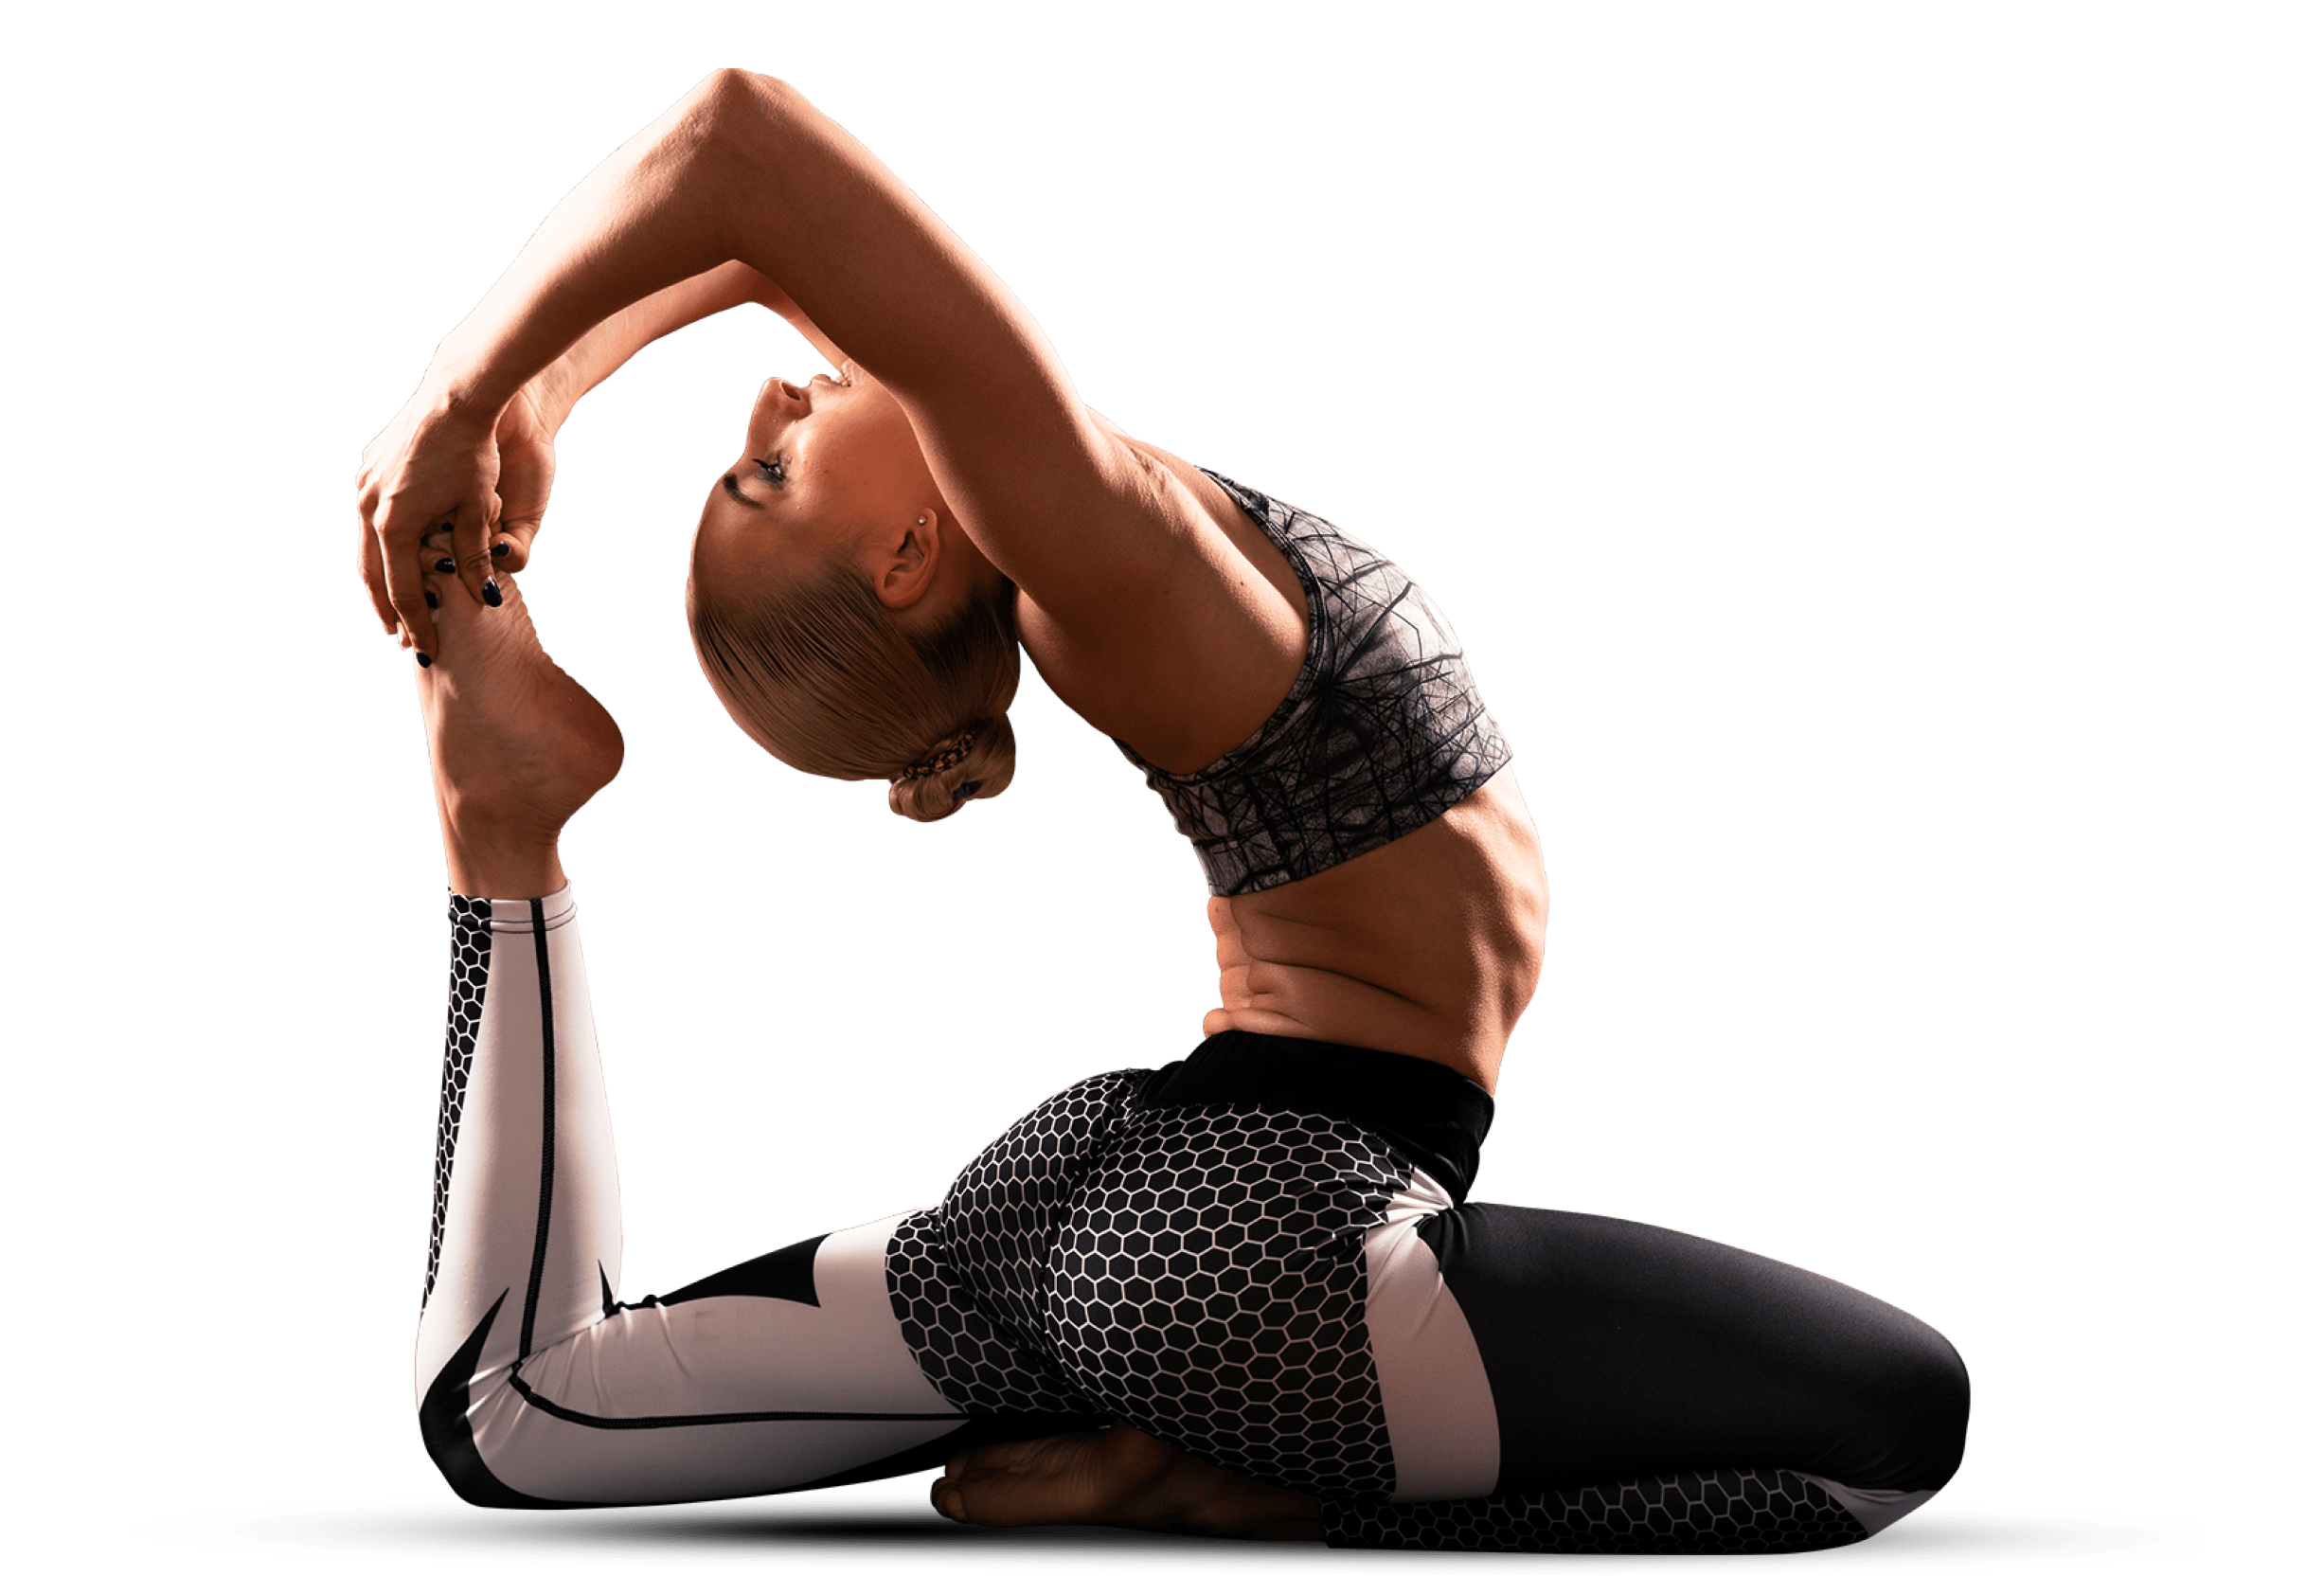 Athletic woman performing a yoga back-bend.